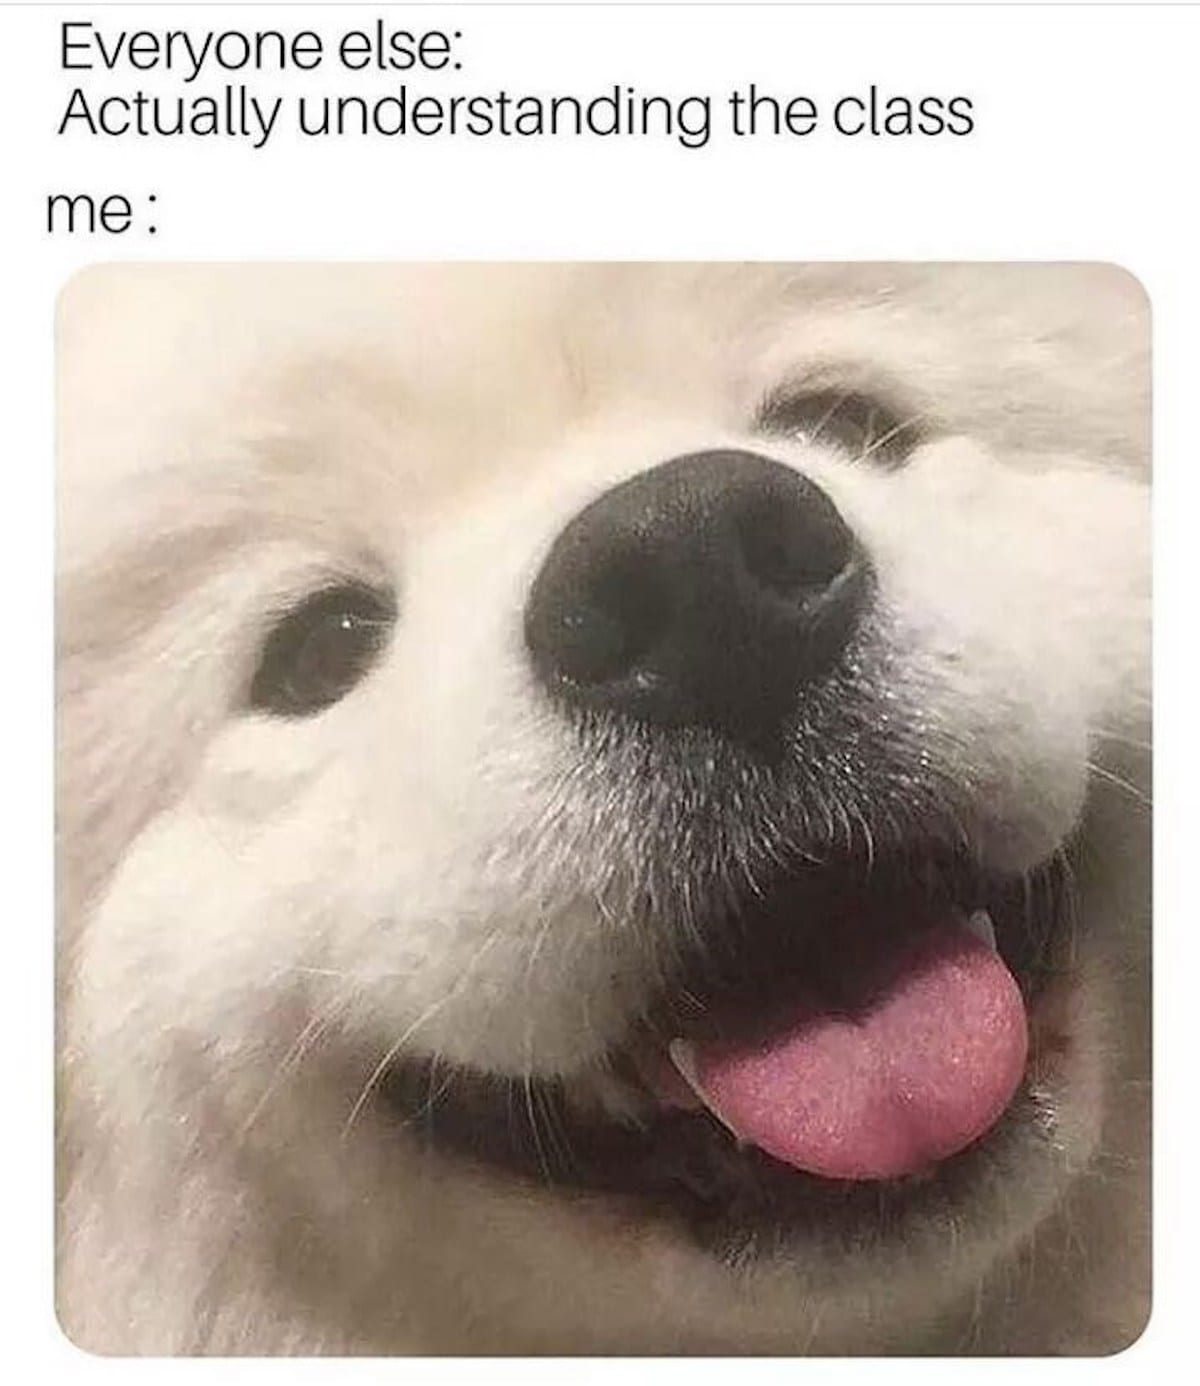 """image of dog with text """"Everyone else: actually understanding the class"""""""